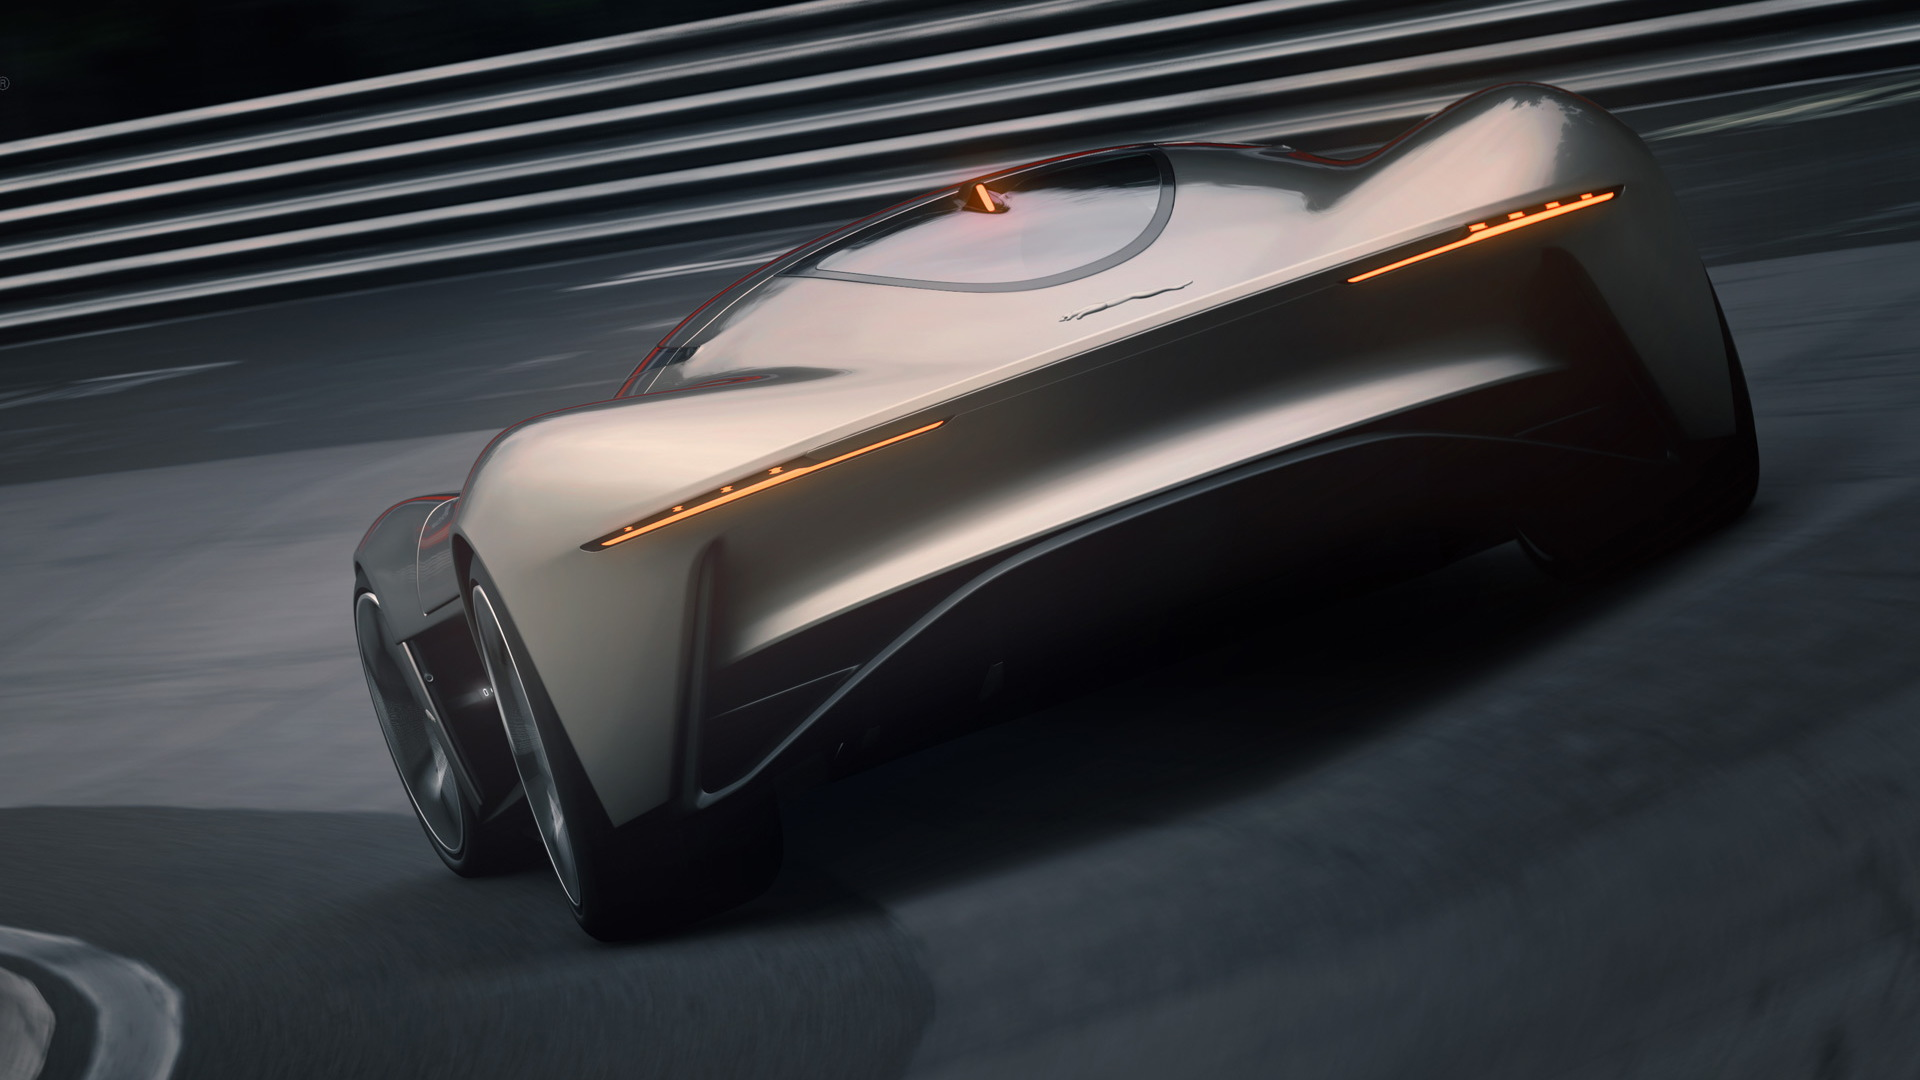 Electric Jaguar Hypercar with 1,000bhp revealed. Sadly, it's not real